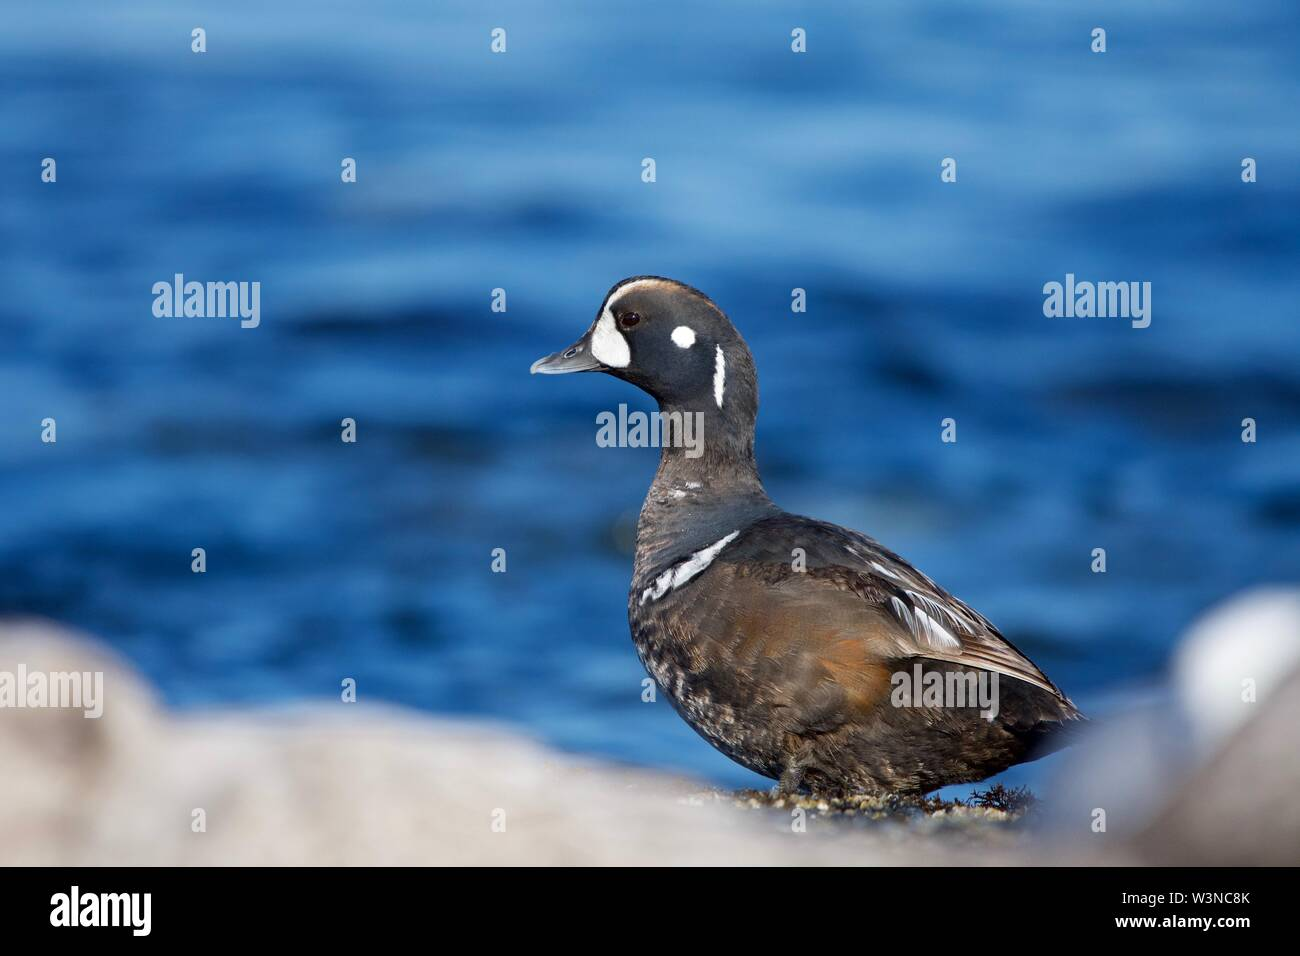 Female harlequin duck cranes her neck as she stands on shore in a group of seagulls, southern Vancouver Island, British Columbia - Stock Image